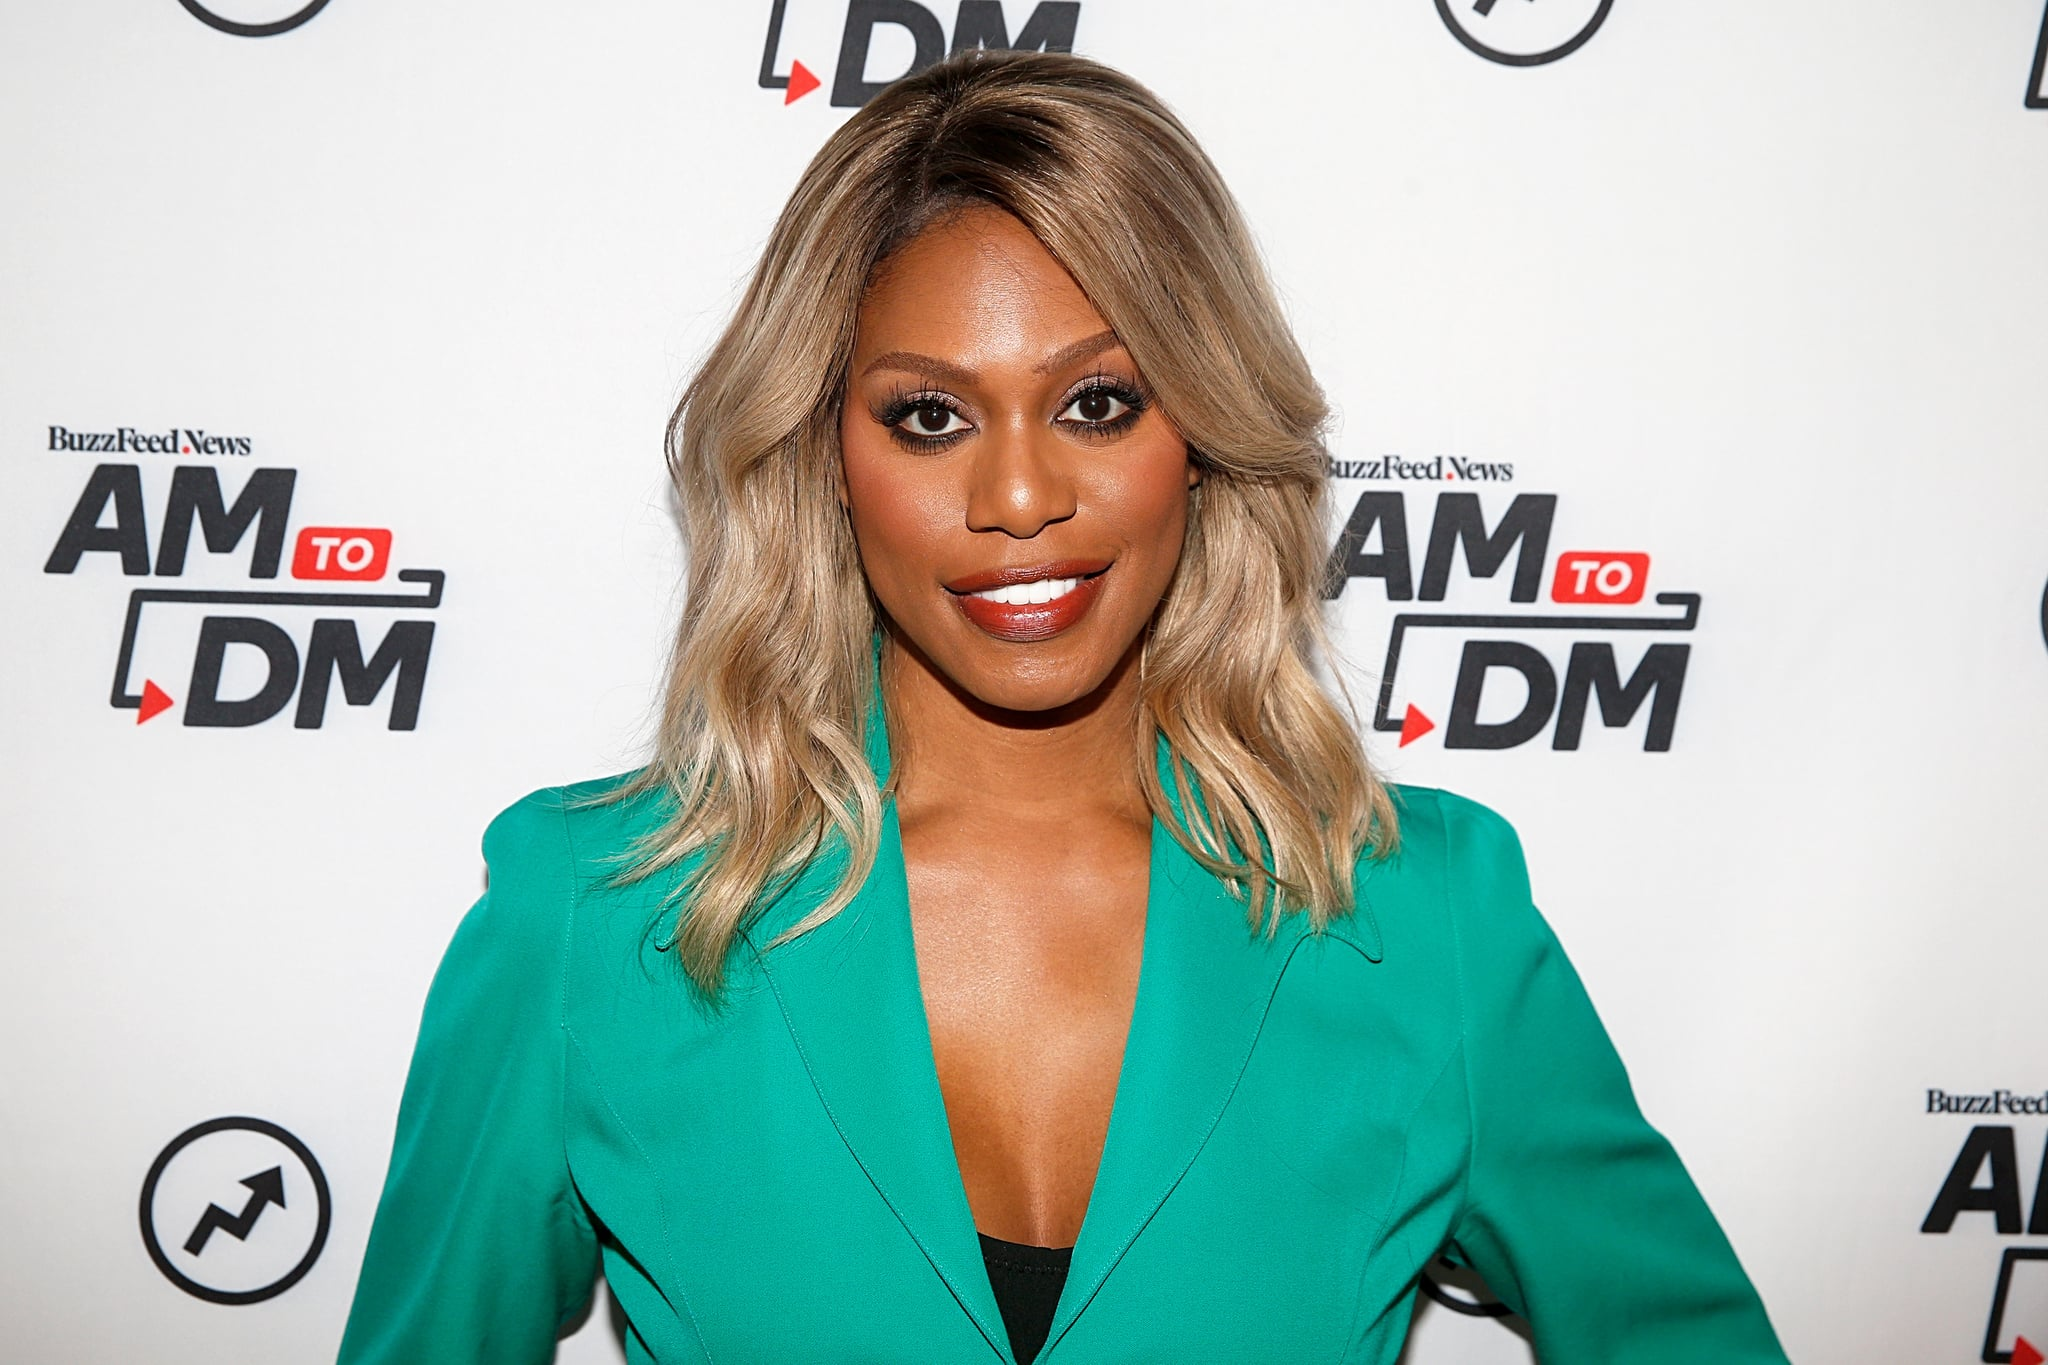 NEW YORK, NEW YORK - OCTOBER 07: Laverne Cox attends BuzzFeed's